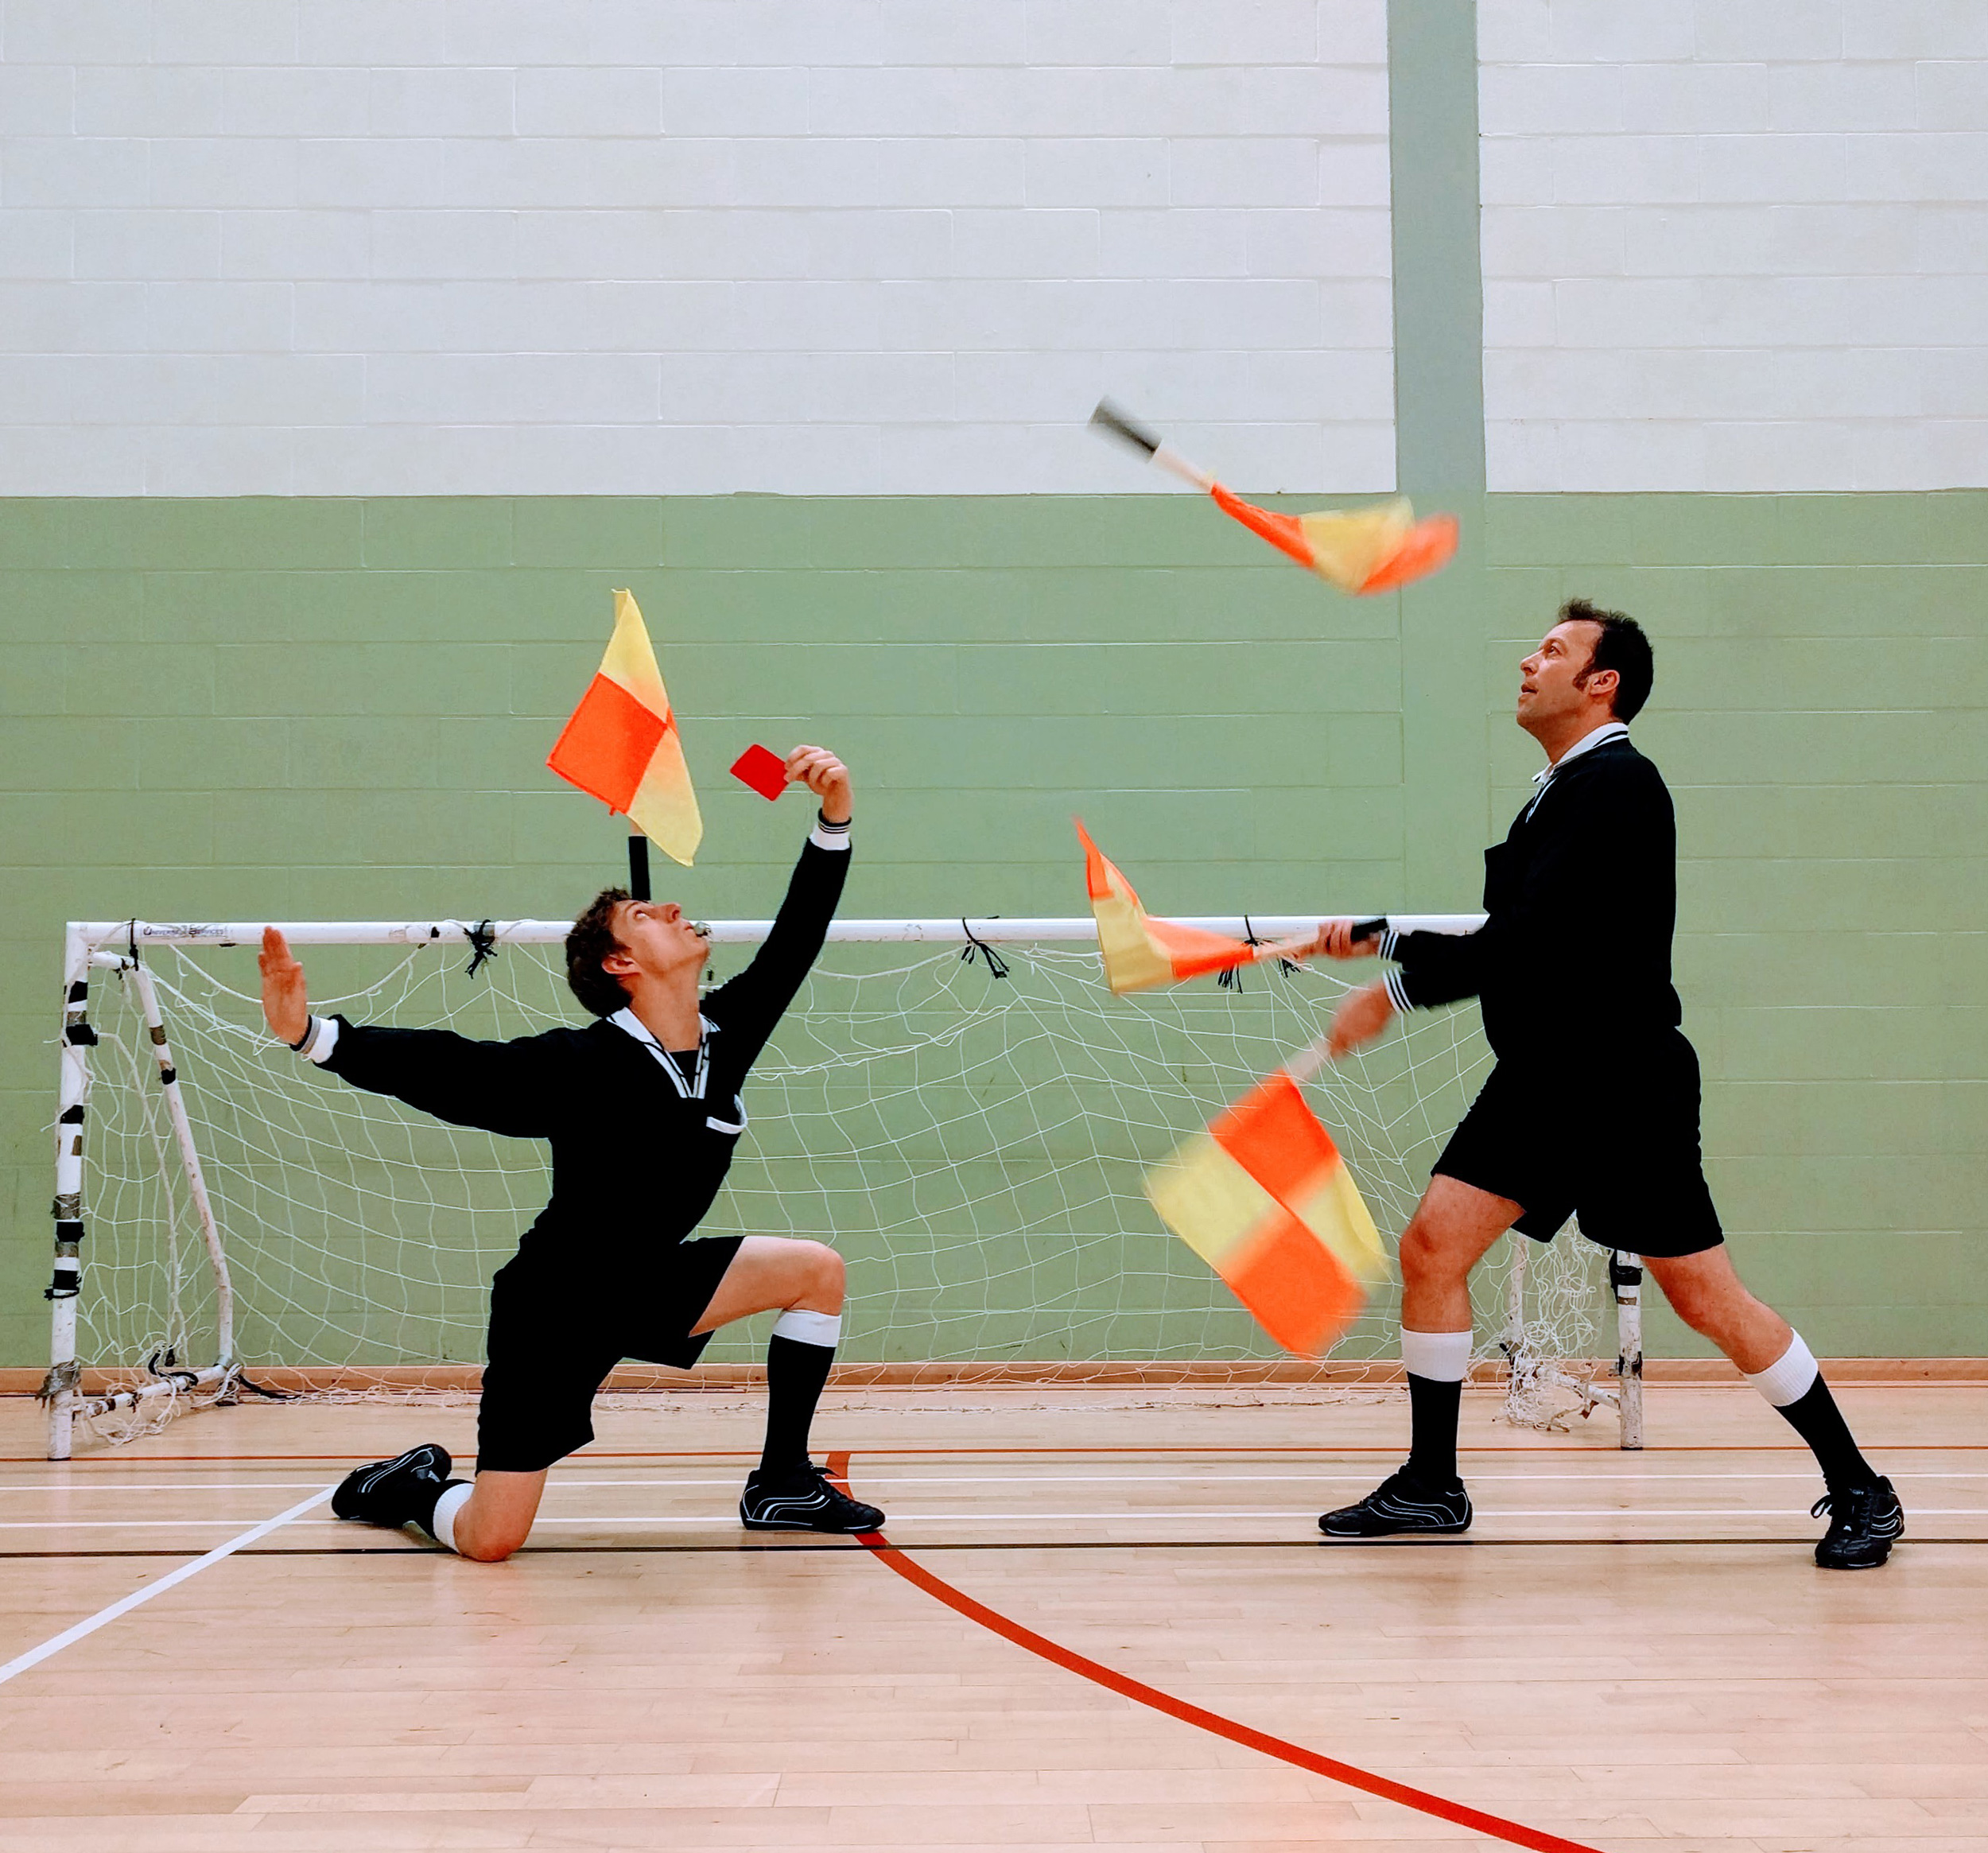 referee circus entertainment juggling sport athlete football rugby tennis cricket